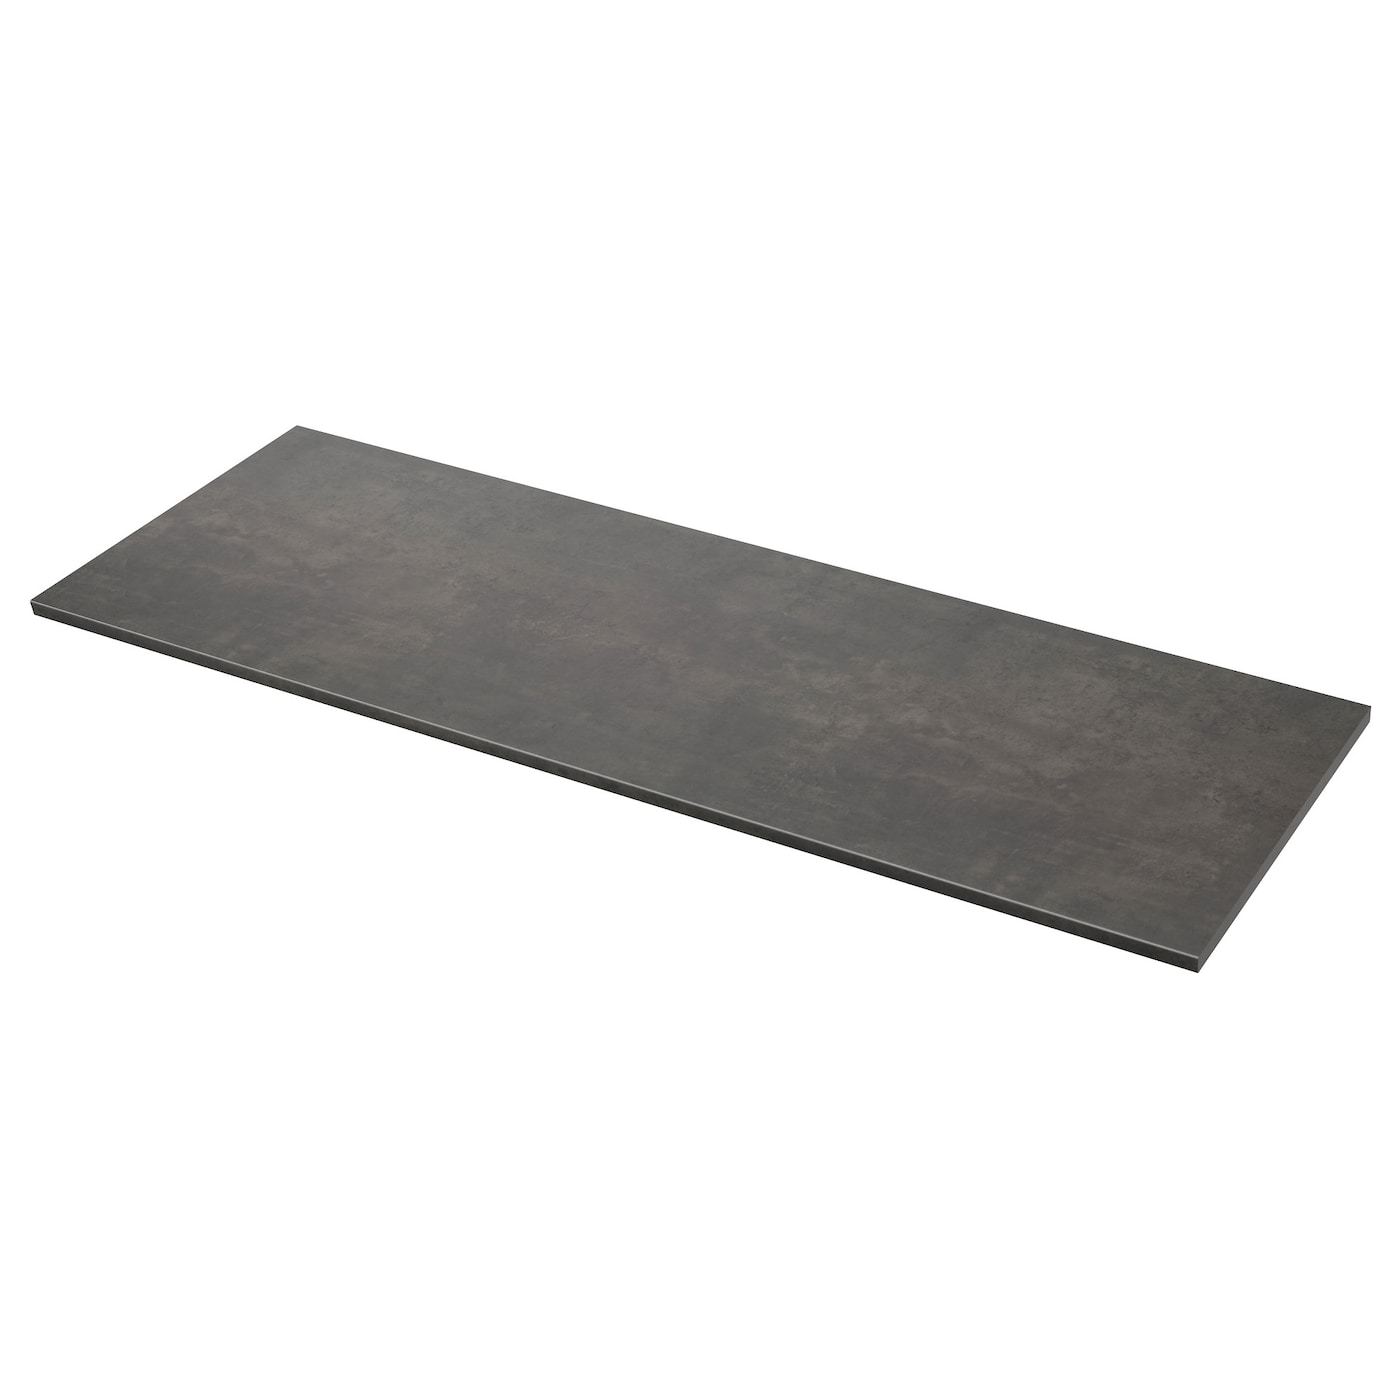 EKBACKEN Worktop Concrete effect 186 x 2.8 cm - IKEA